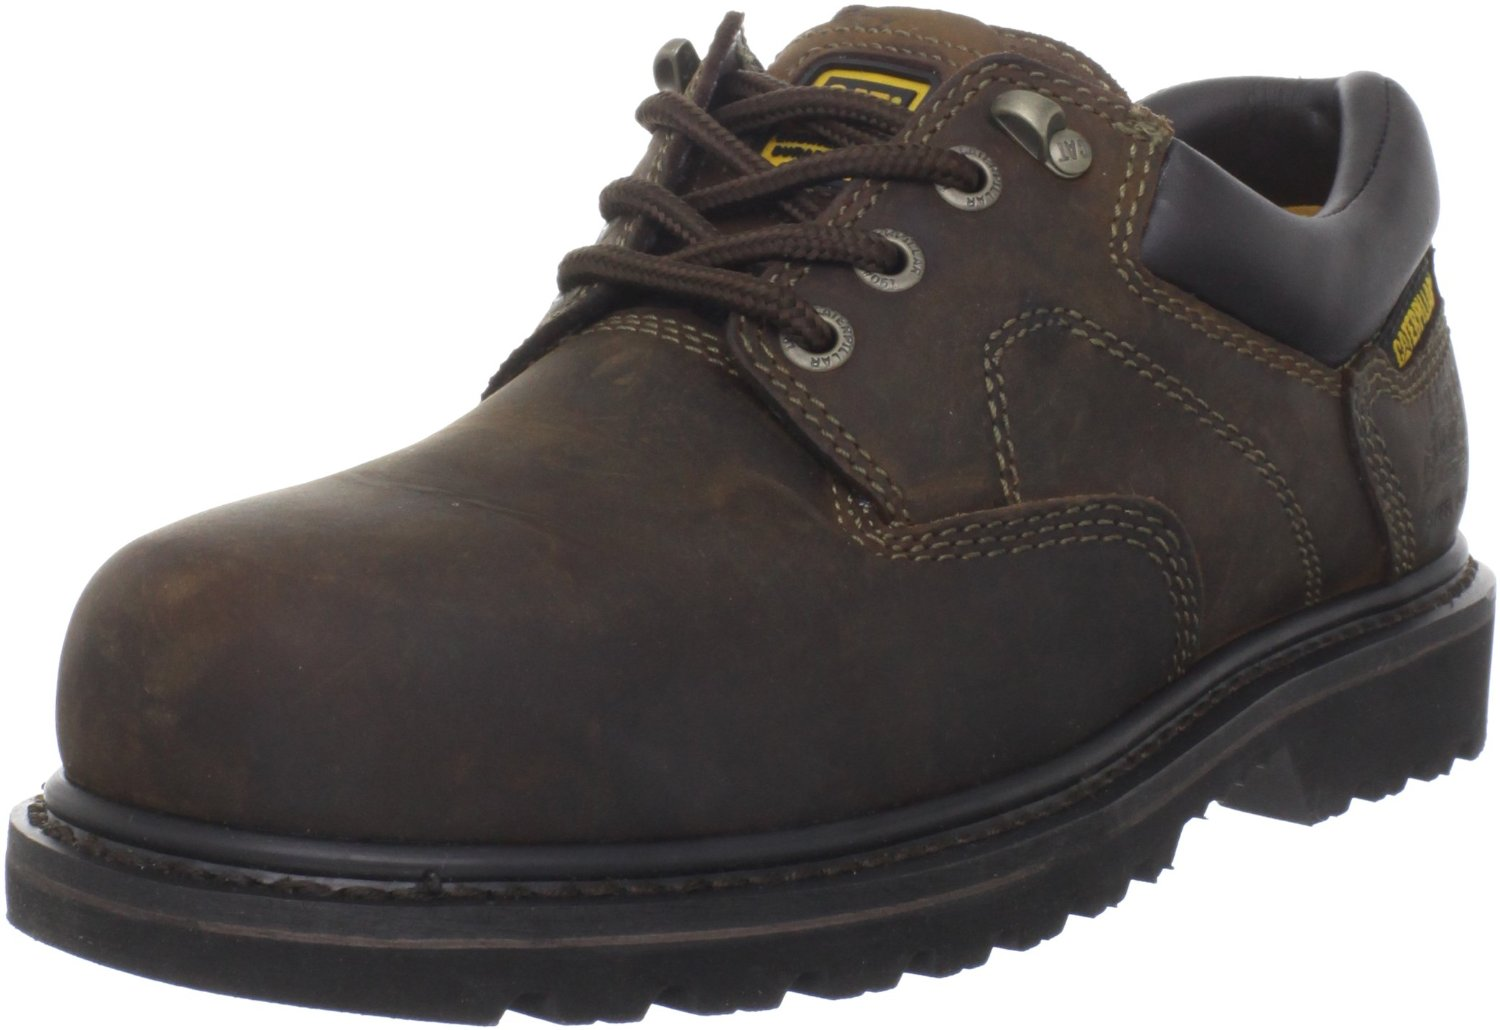 Caterpillar Mens Caterpillar Cat Ridgemont Work Safety Shoes Steel Toe Oxford Wide (EE) Dark Brown P89702 at Sears.com